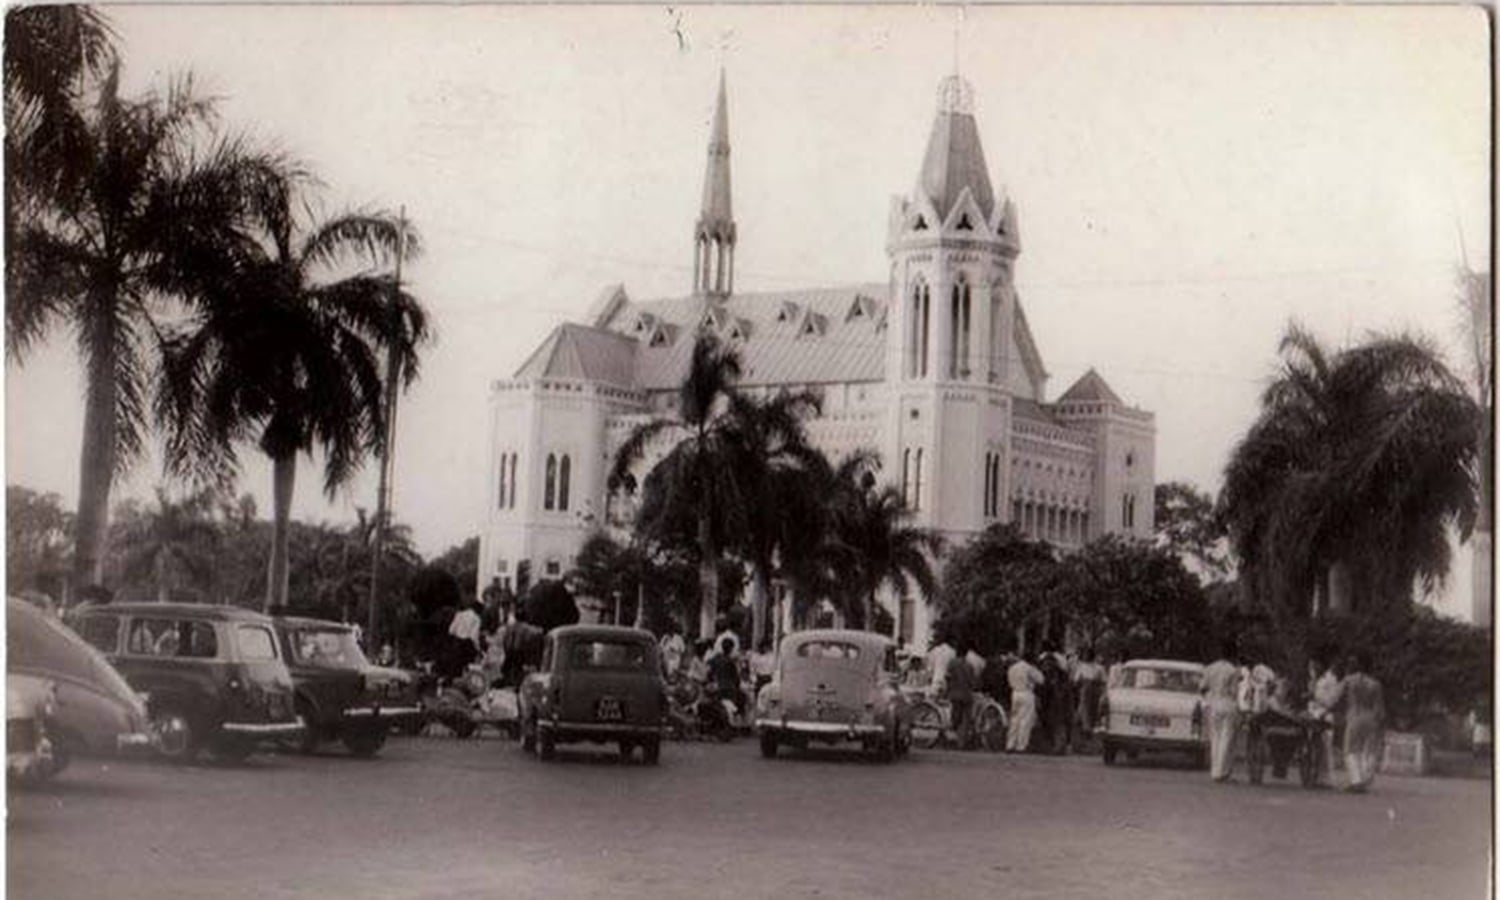 Frere Hall & Garden in the 1960s. Fines were imposed in some areas on littering. (Photo: FM Ansari)